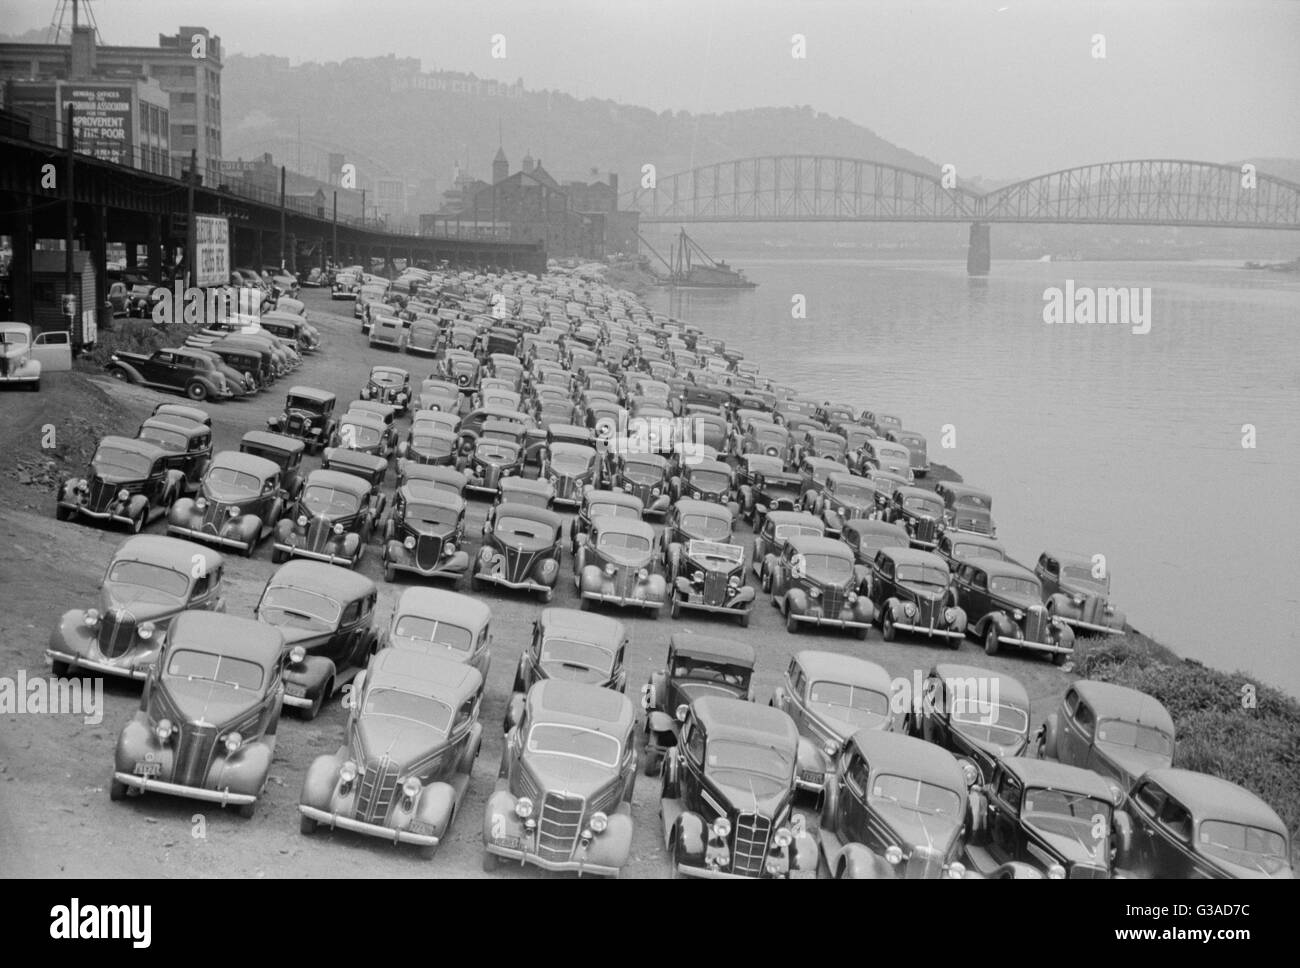 Cars parked along Allegheny River, Pittsburgh, Pennsylvania. Date 1938 July. - Stock Image